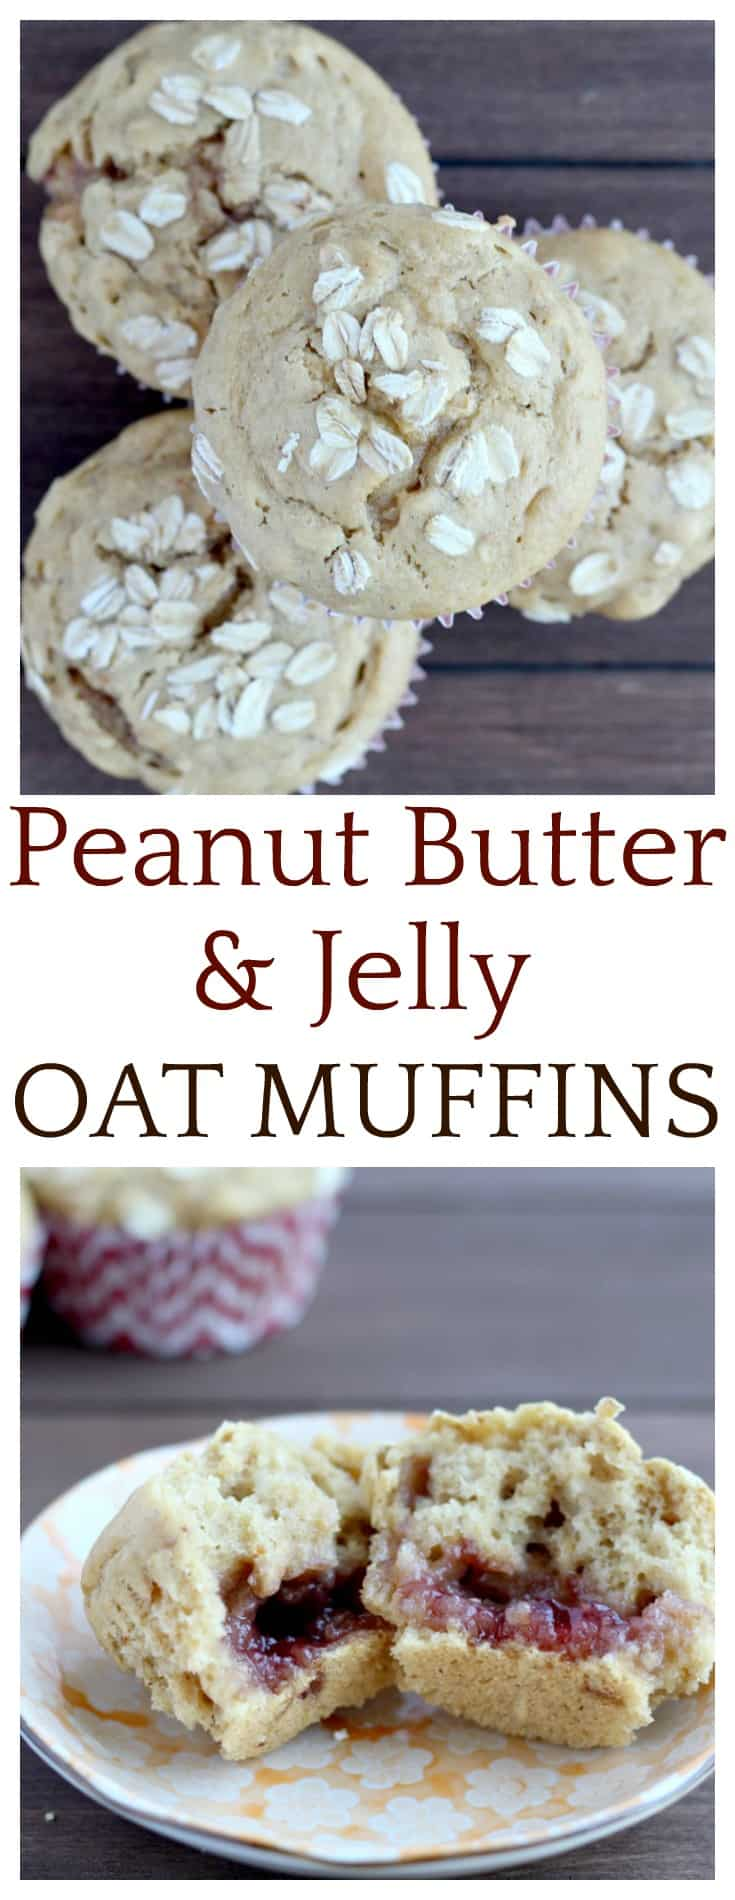 Peanut butter and jelly is such a classic flavor combination. It's fun to mix things up which is how this recipe for Peanut Butter & Jelly Oat Muffins came about!  The jelly is a fun little surprise in the middle!